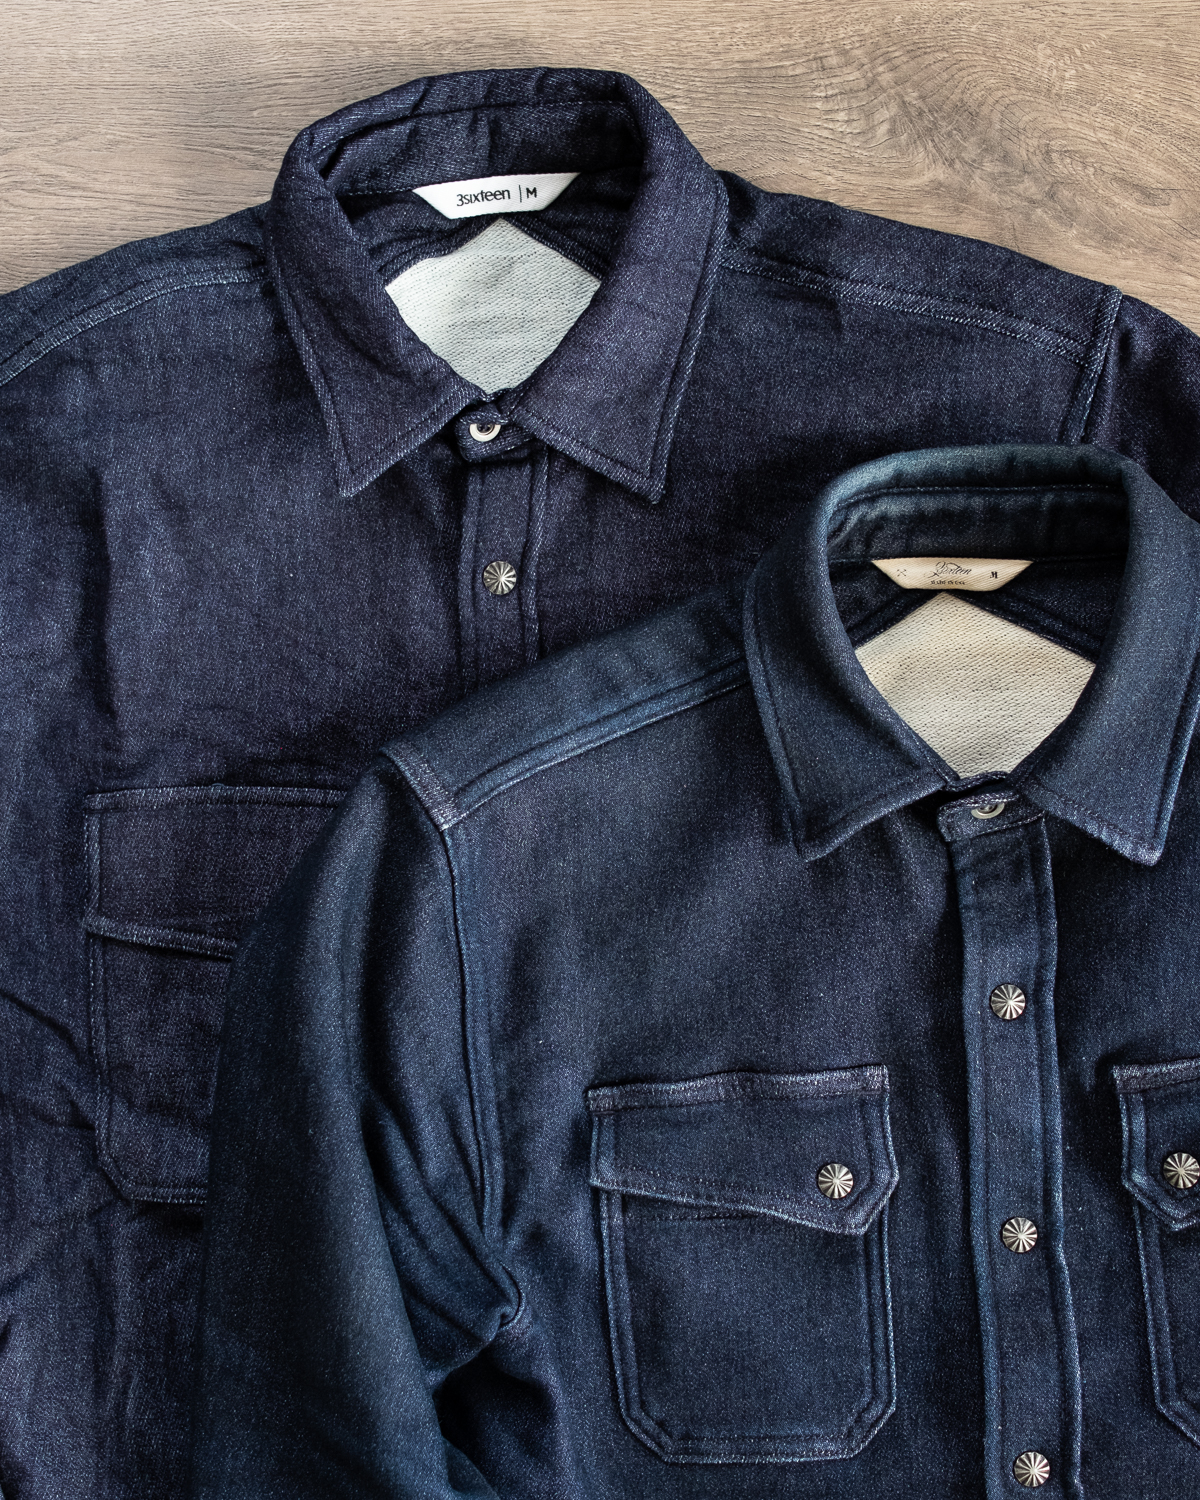 3sixteen Indigo Knit Crosscut Flannel